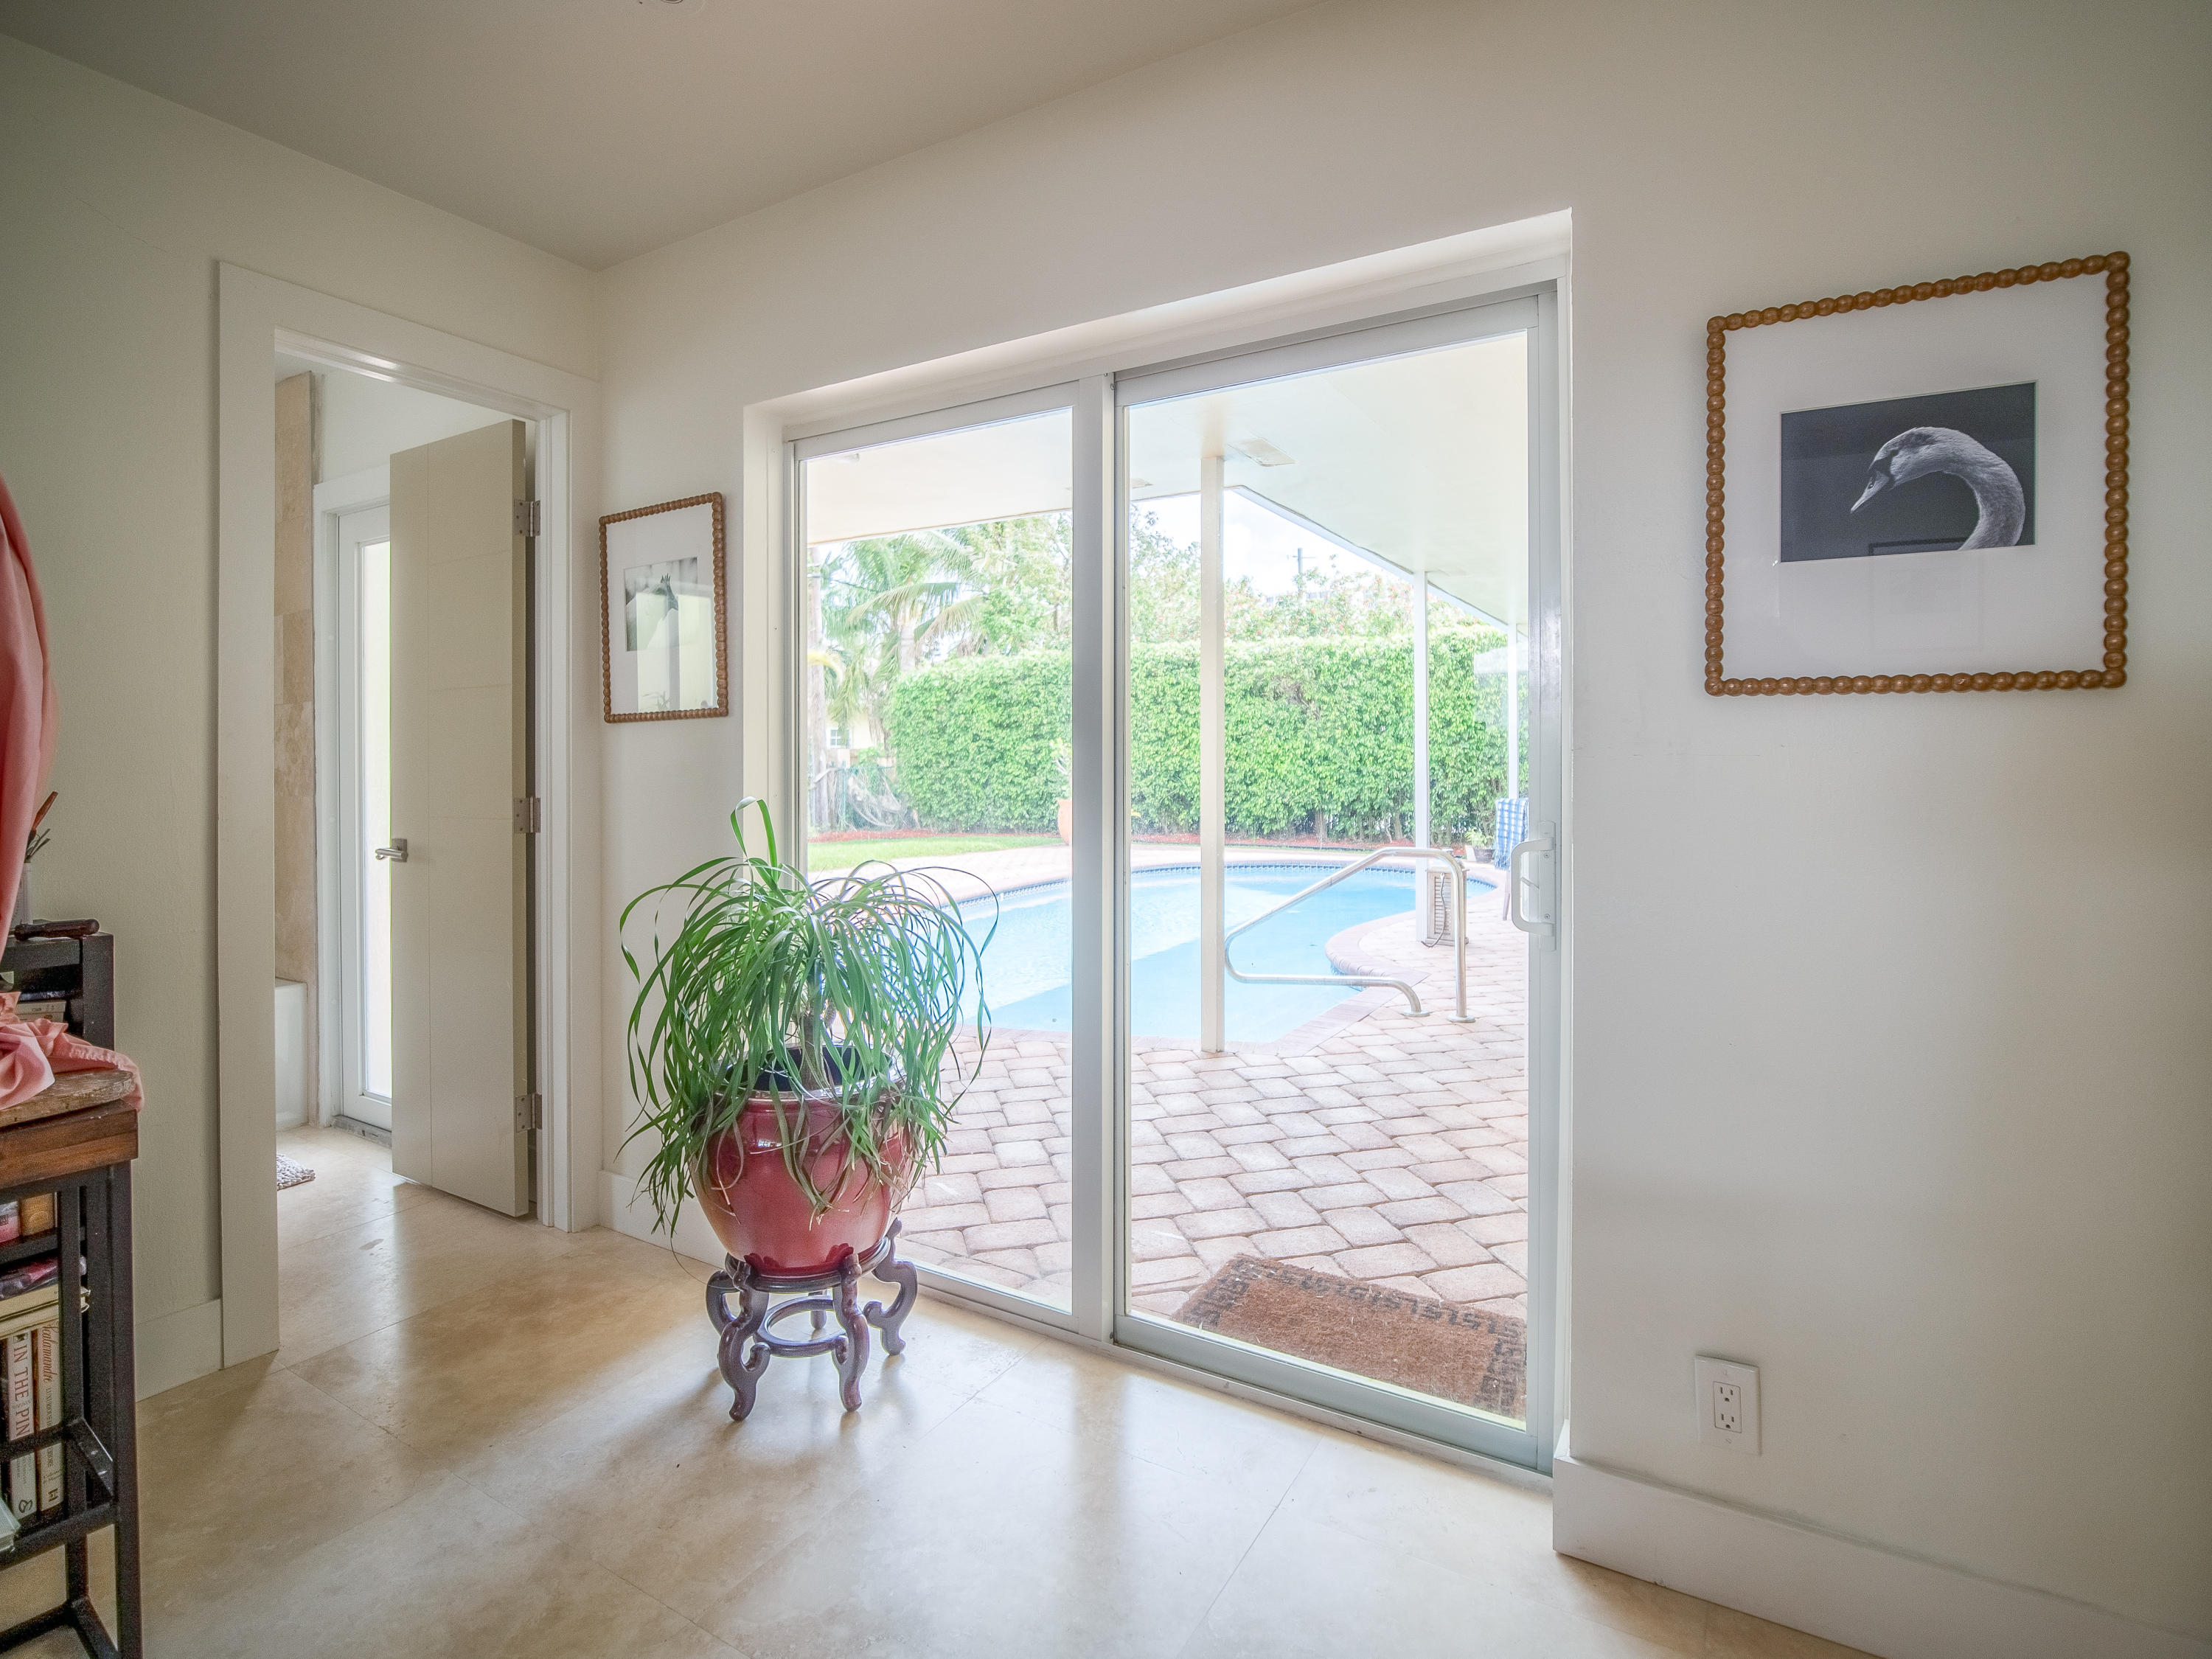 SPANISH RIVER LAND HOMES FOR SALE